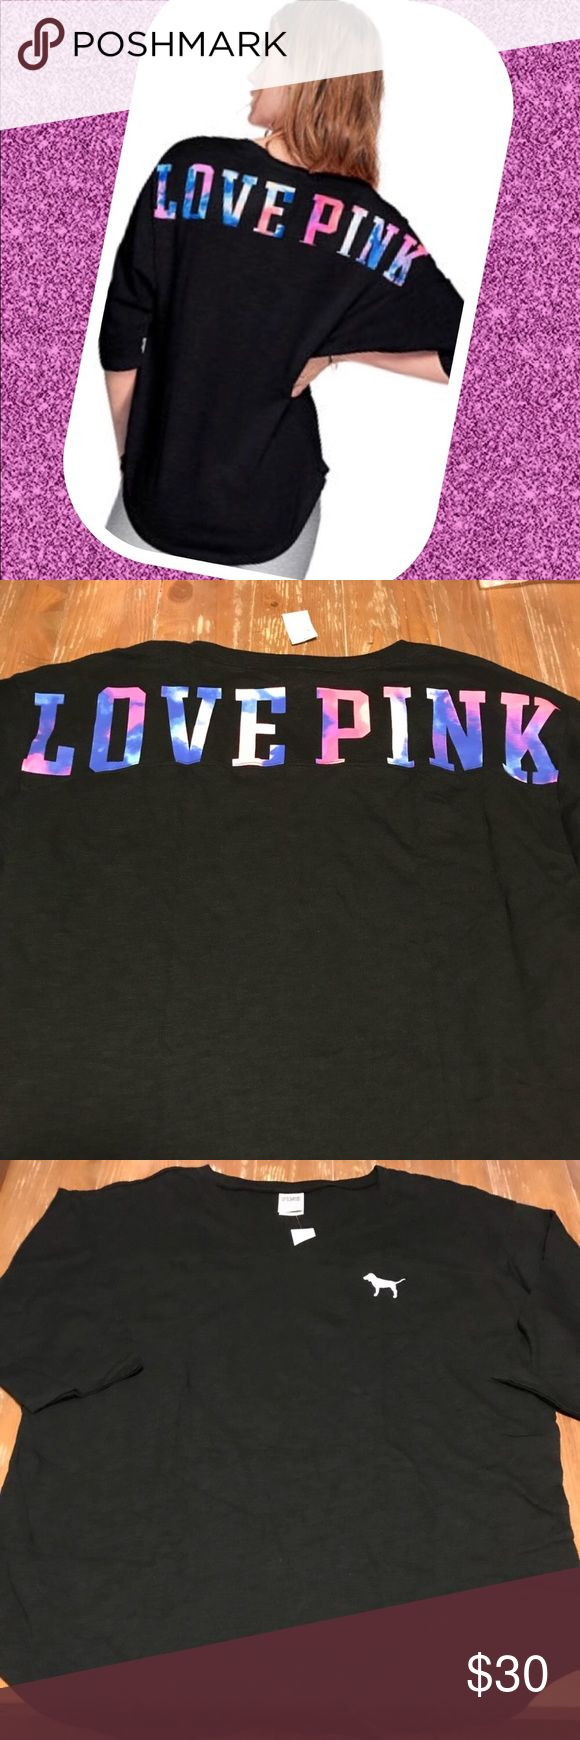 NEW VS PINK Boyfriend Jersey Tee New with tags Victoria's Secret Pink Boyfriend Jersey Multicolor Pink logo across the back  3/4 length sleeve  Relaxed fit PINK Victoria's Secret Tops Tees - Short Sleeve